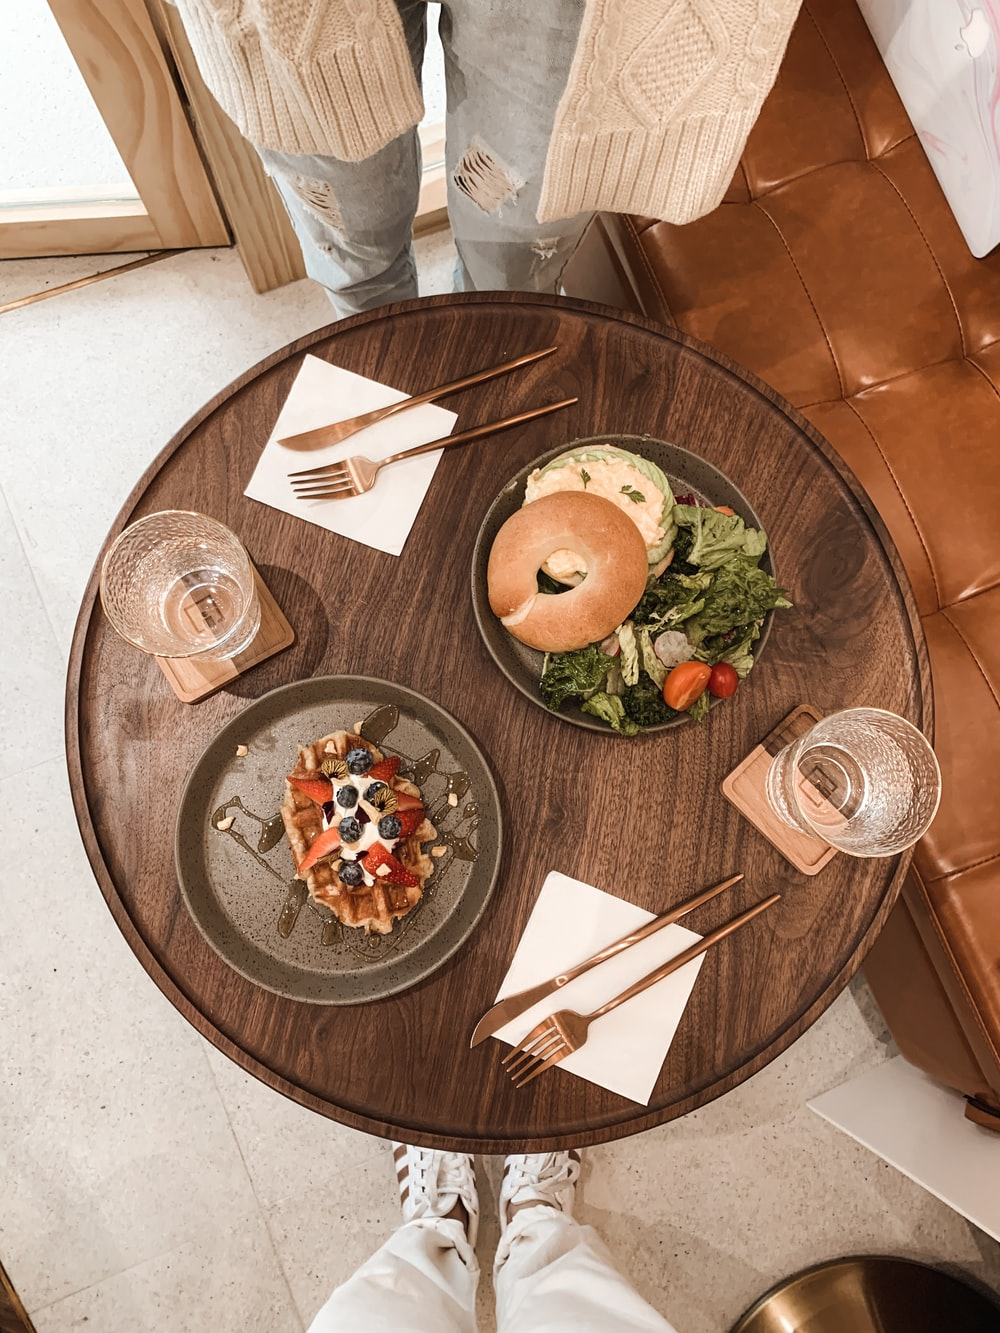 brown round plate with foods on table